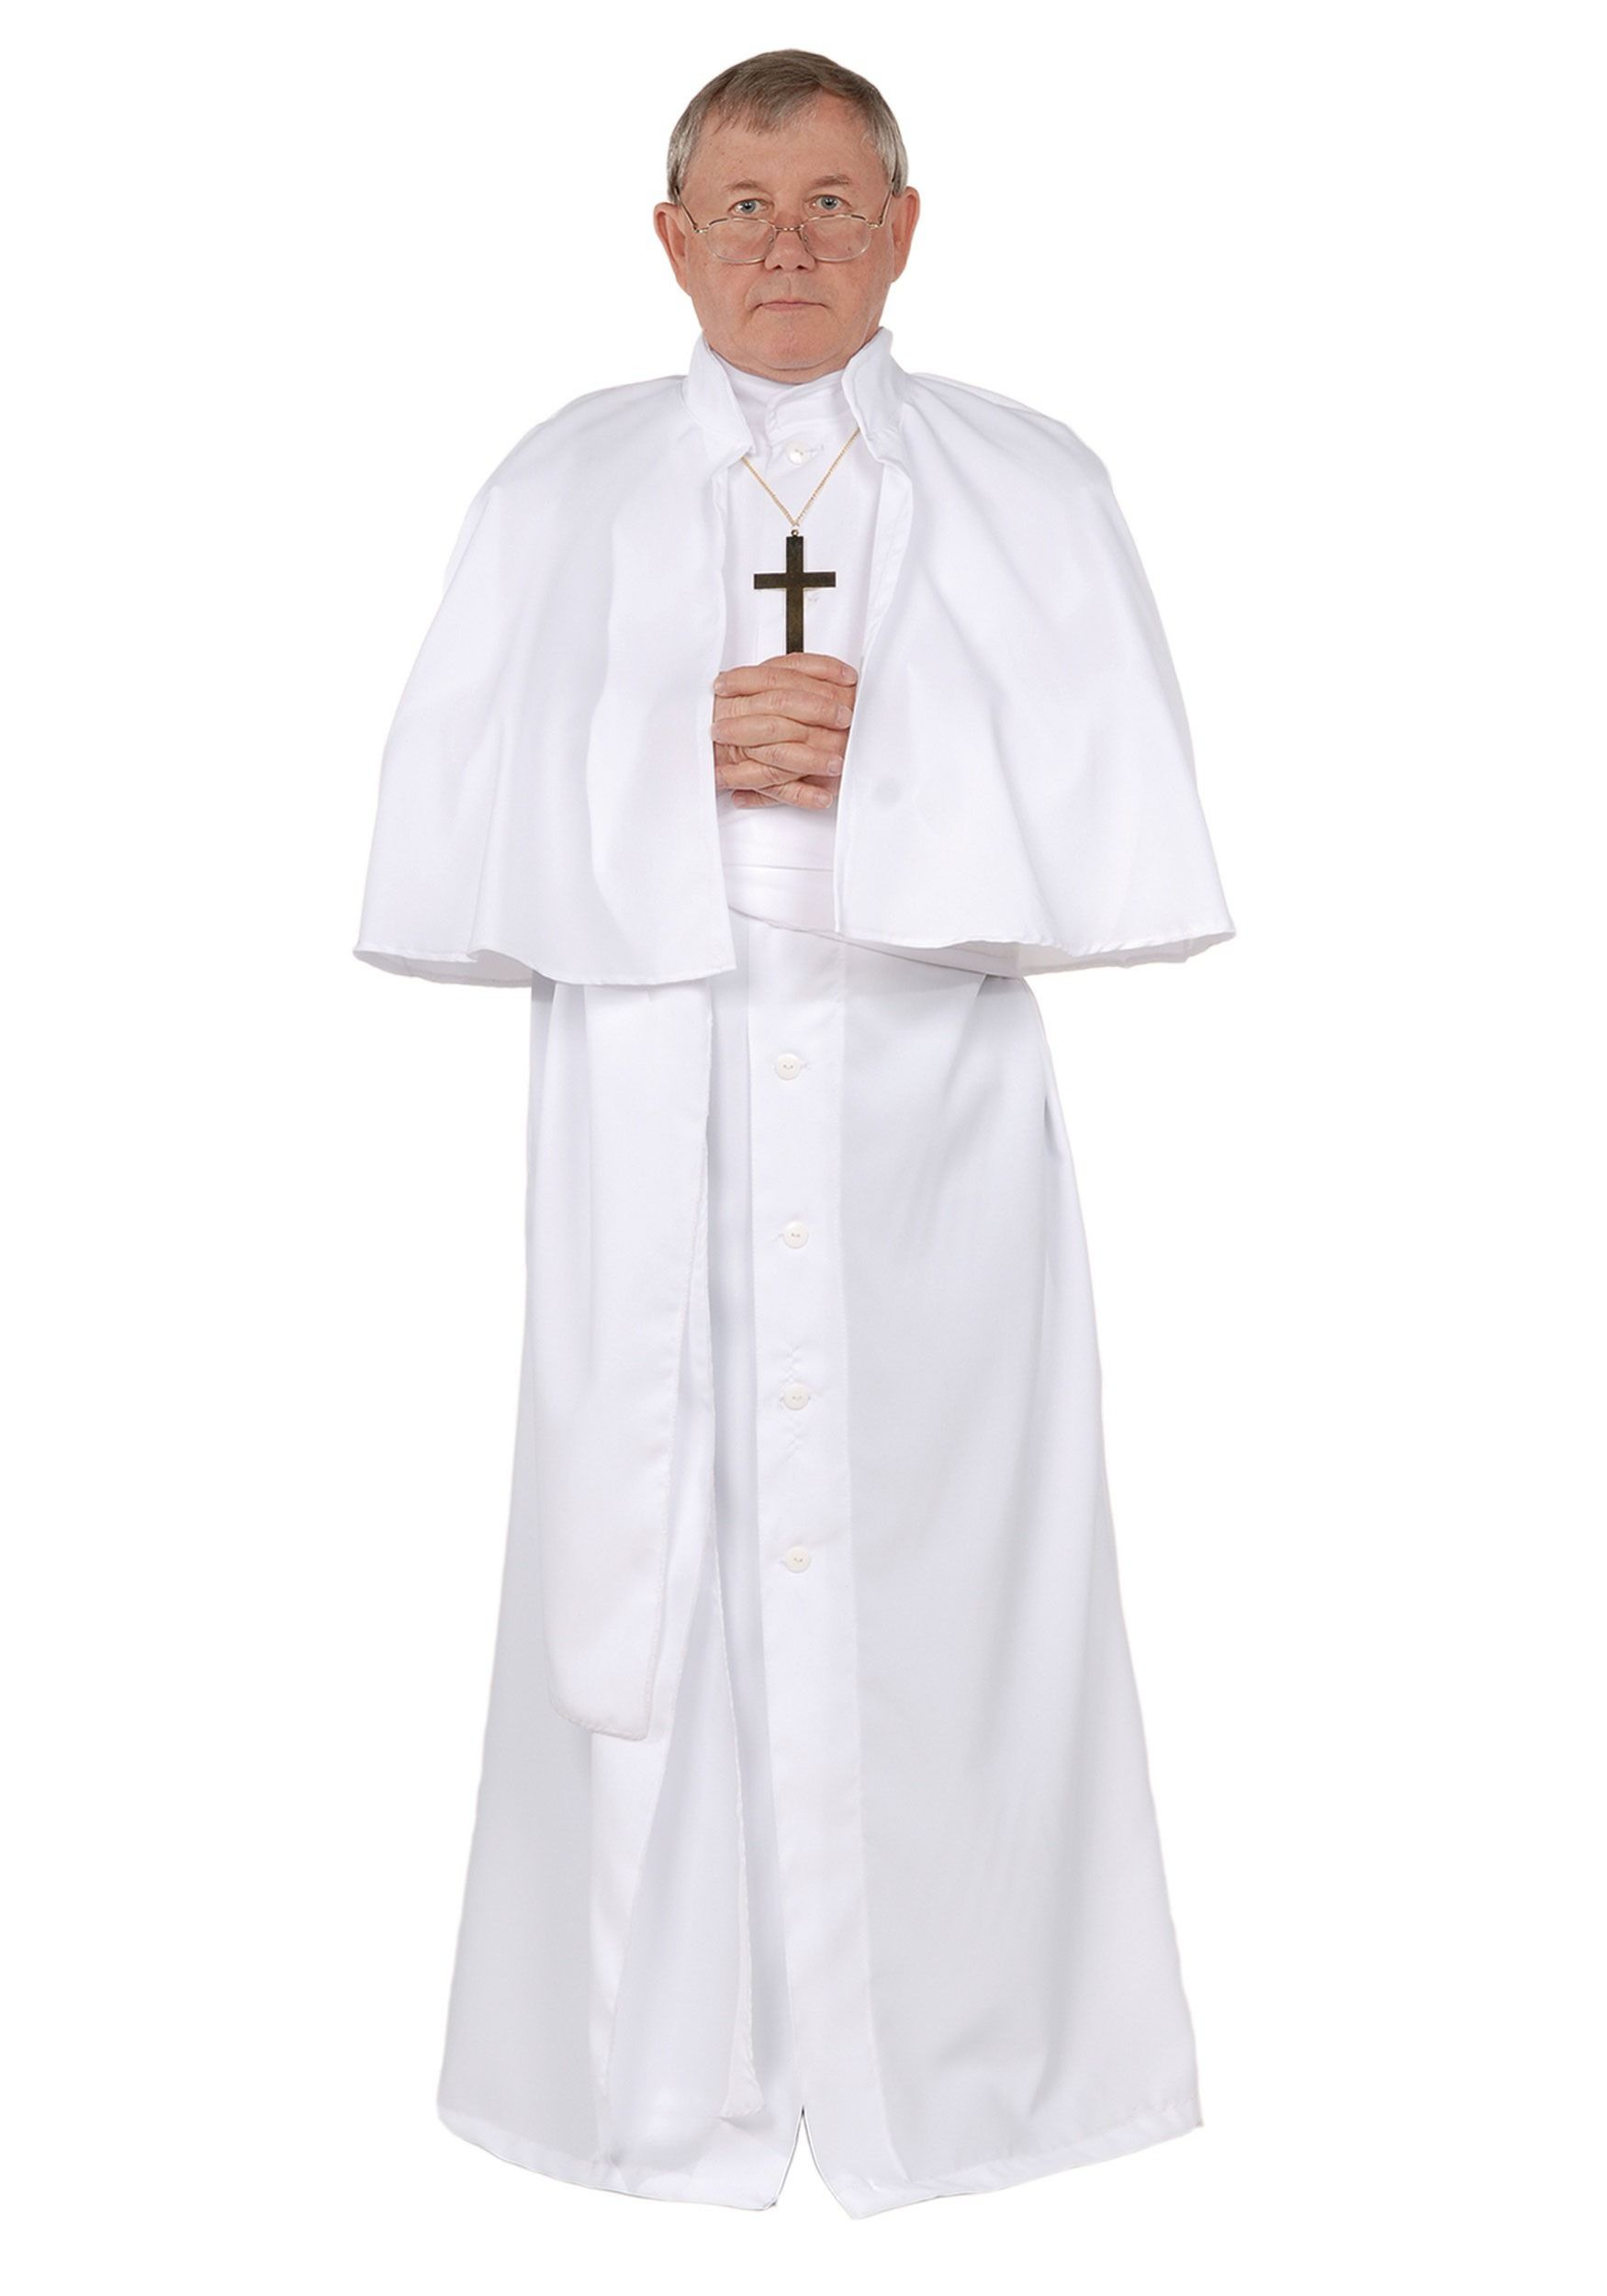 Men's Plus Size Pope Costume | Pope costume, Costumes and ...